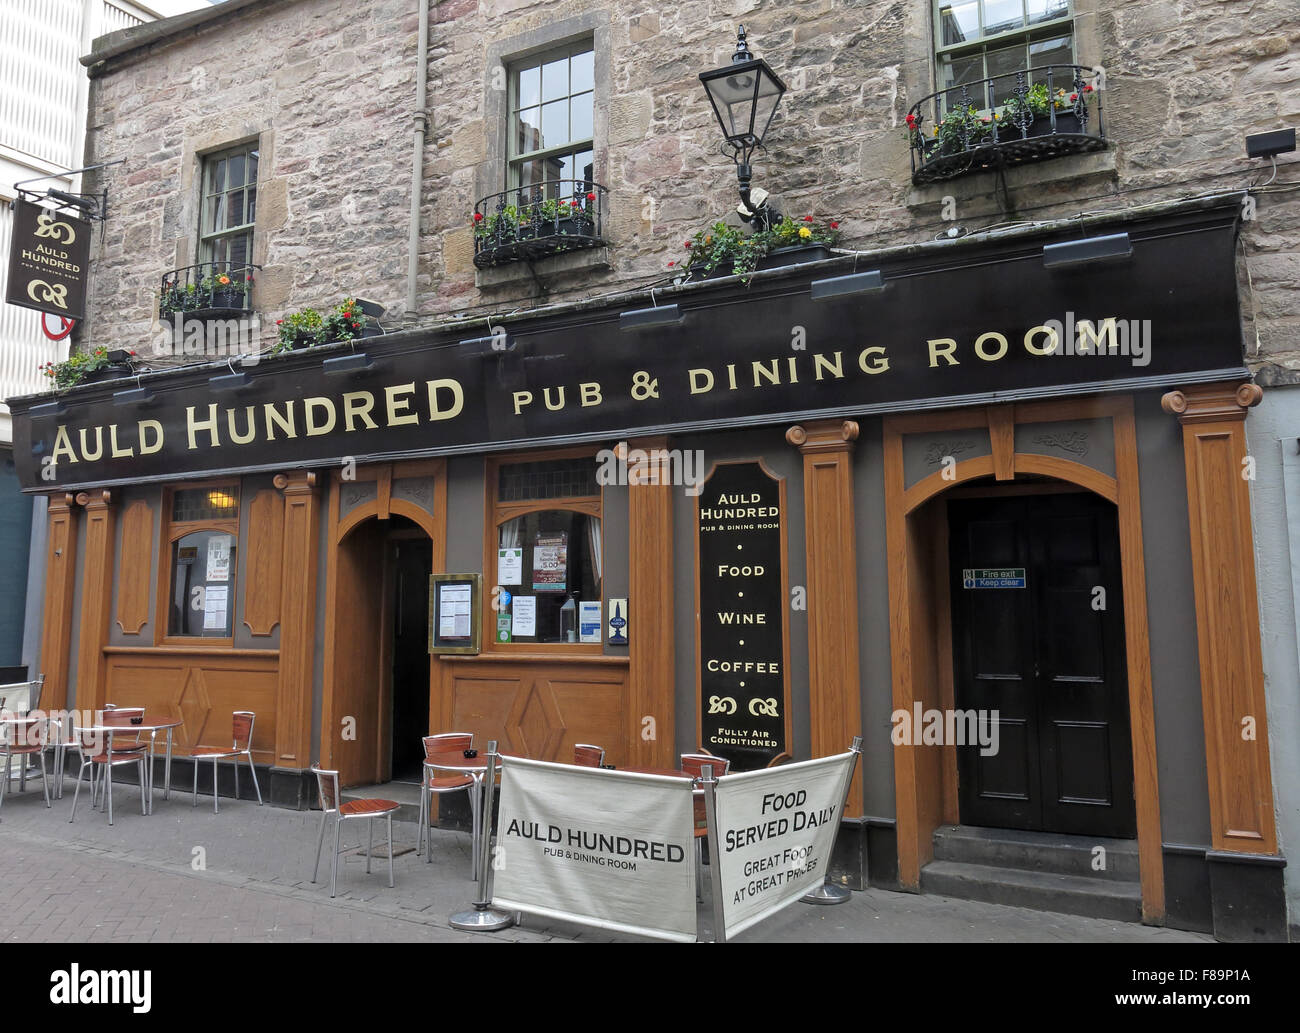 Pubs,stag,night,hen,nights,location,for,area,EDN,narrow,new,pedestrian,pedestrianised,scottish,shopping,st,street,town,dining,room,stone,rose street,Rose st,Auld Hundred,Pub,&,Dining,Room,Pub,and,Dining,Room,GoTonySmith,drinking,culture,alcoholism,alcoholics,AA,outside,street,history,historic,Buy Pictures of,Buy Images Of,Edinburgh Pubs,Edinburgh Pub